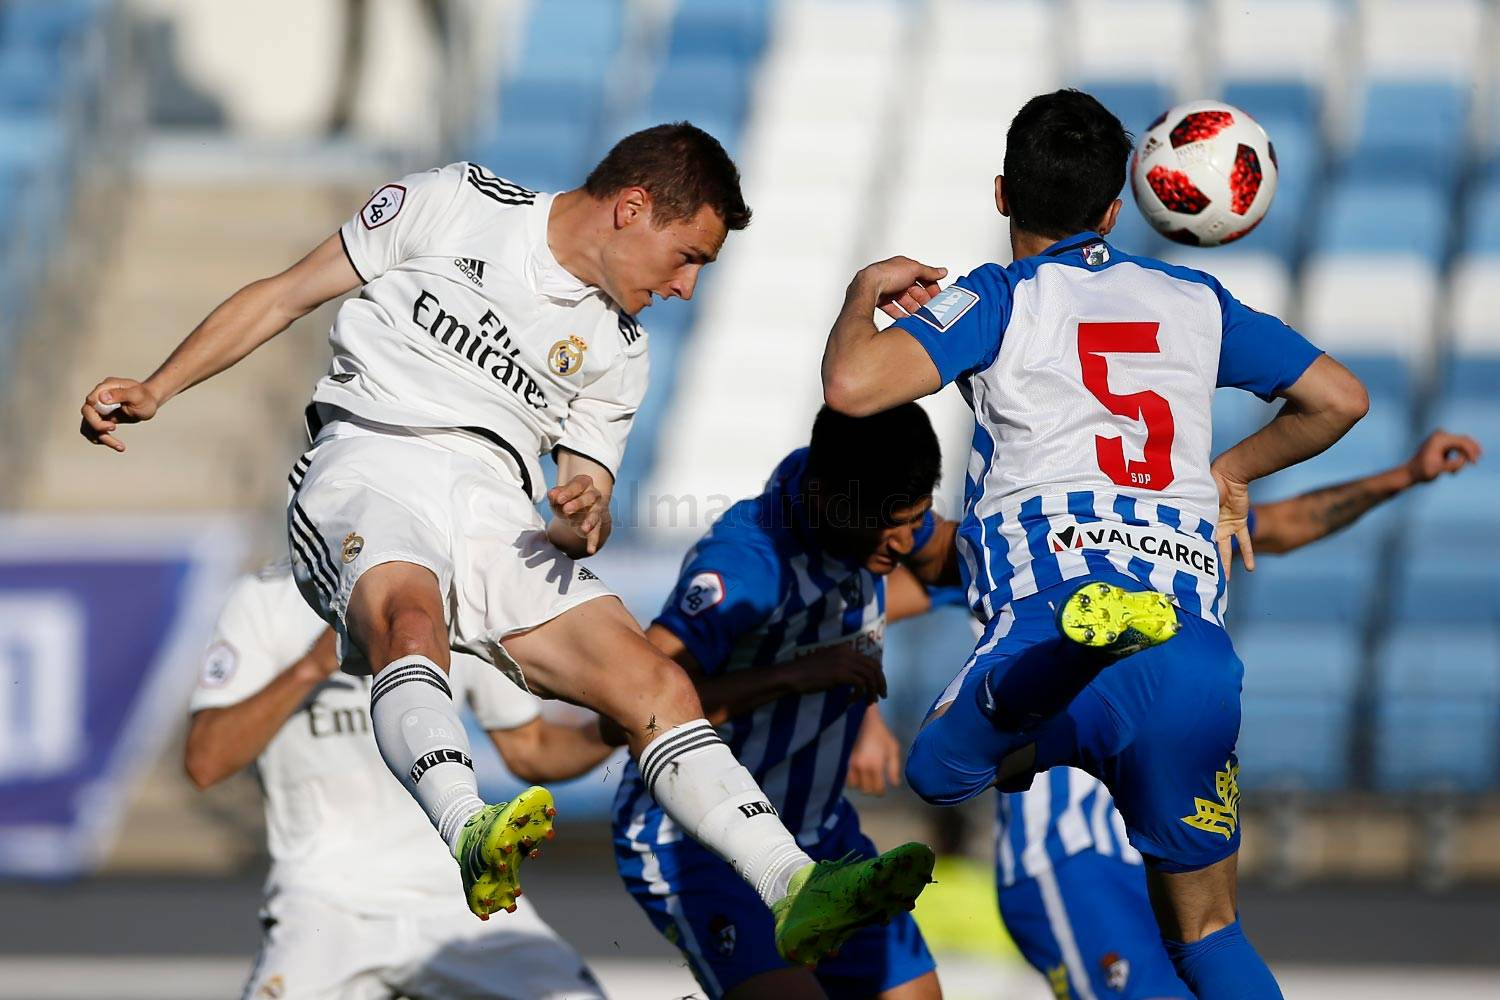 Real Madrid - Real Madrid Castilla - Ponferradina - 24-03-2019